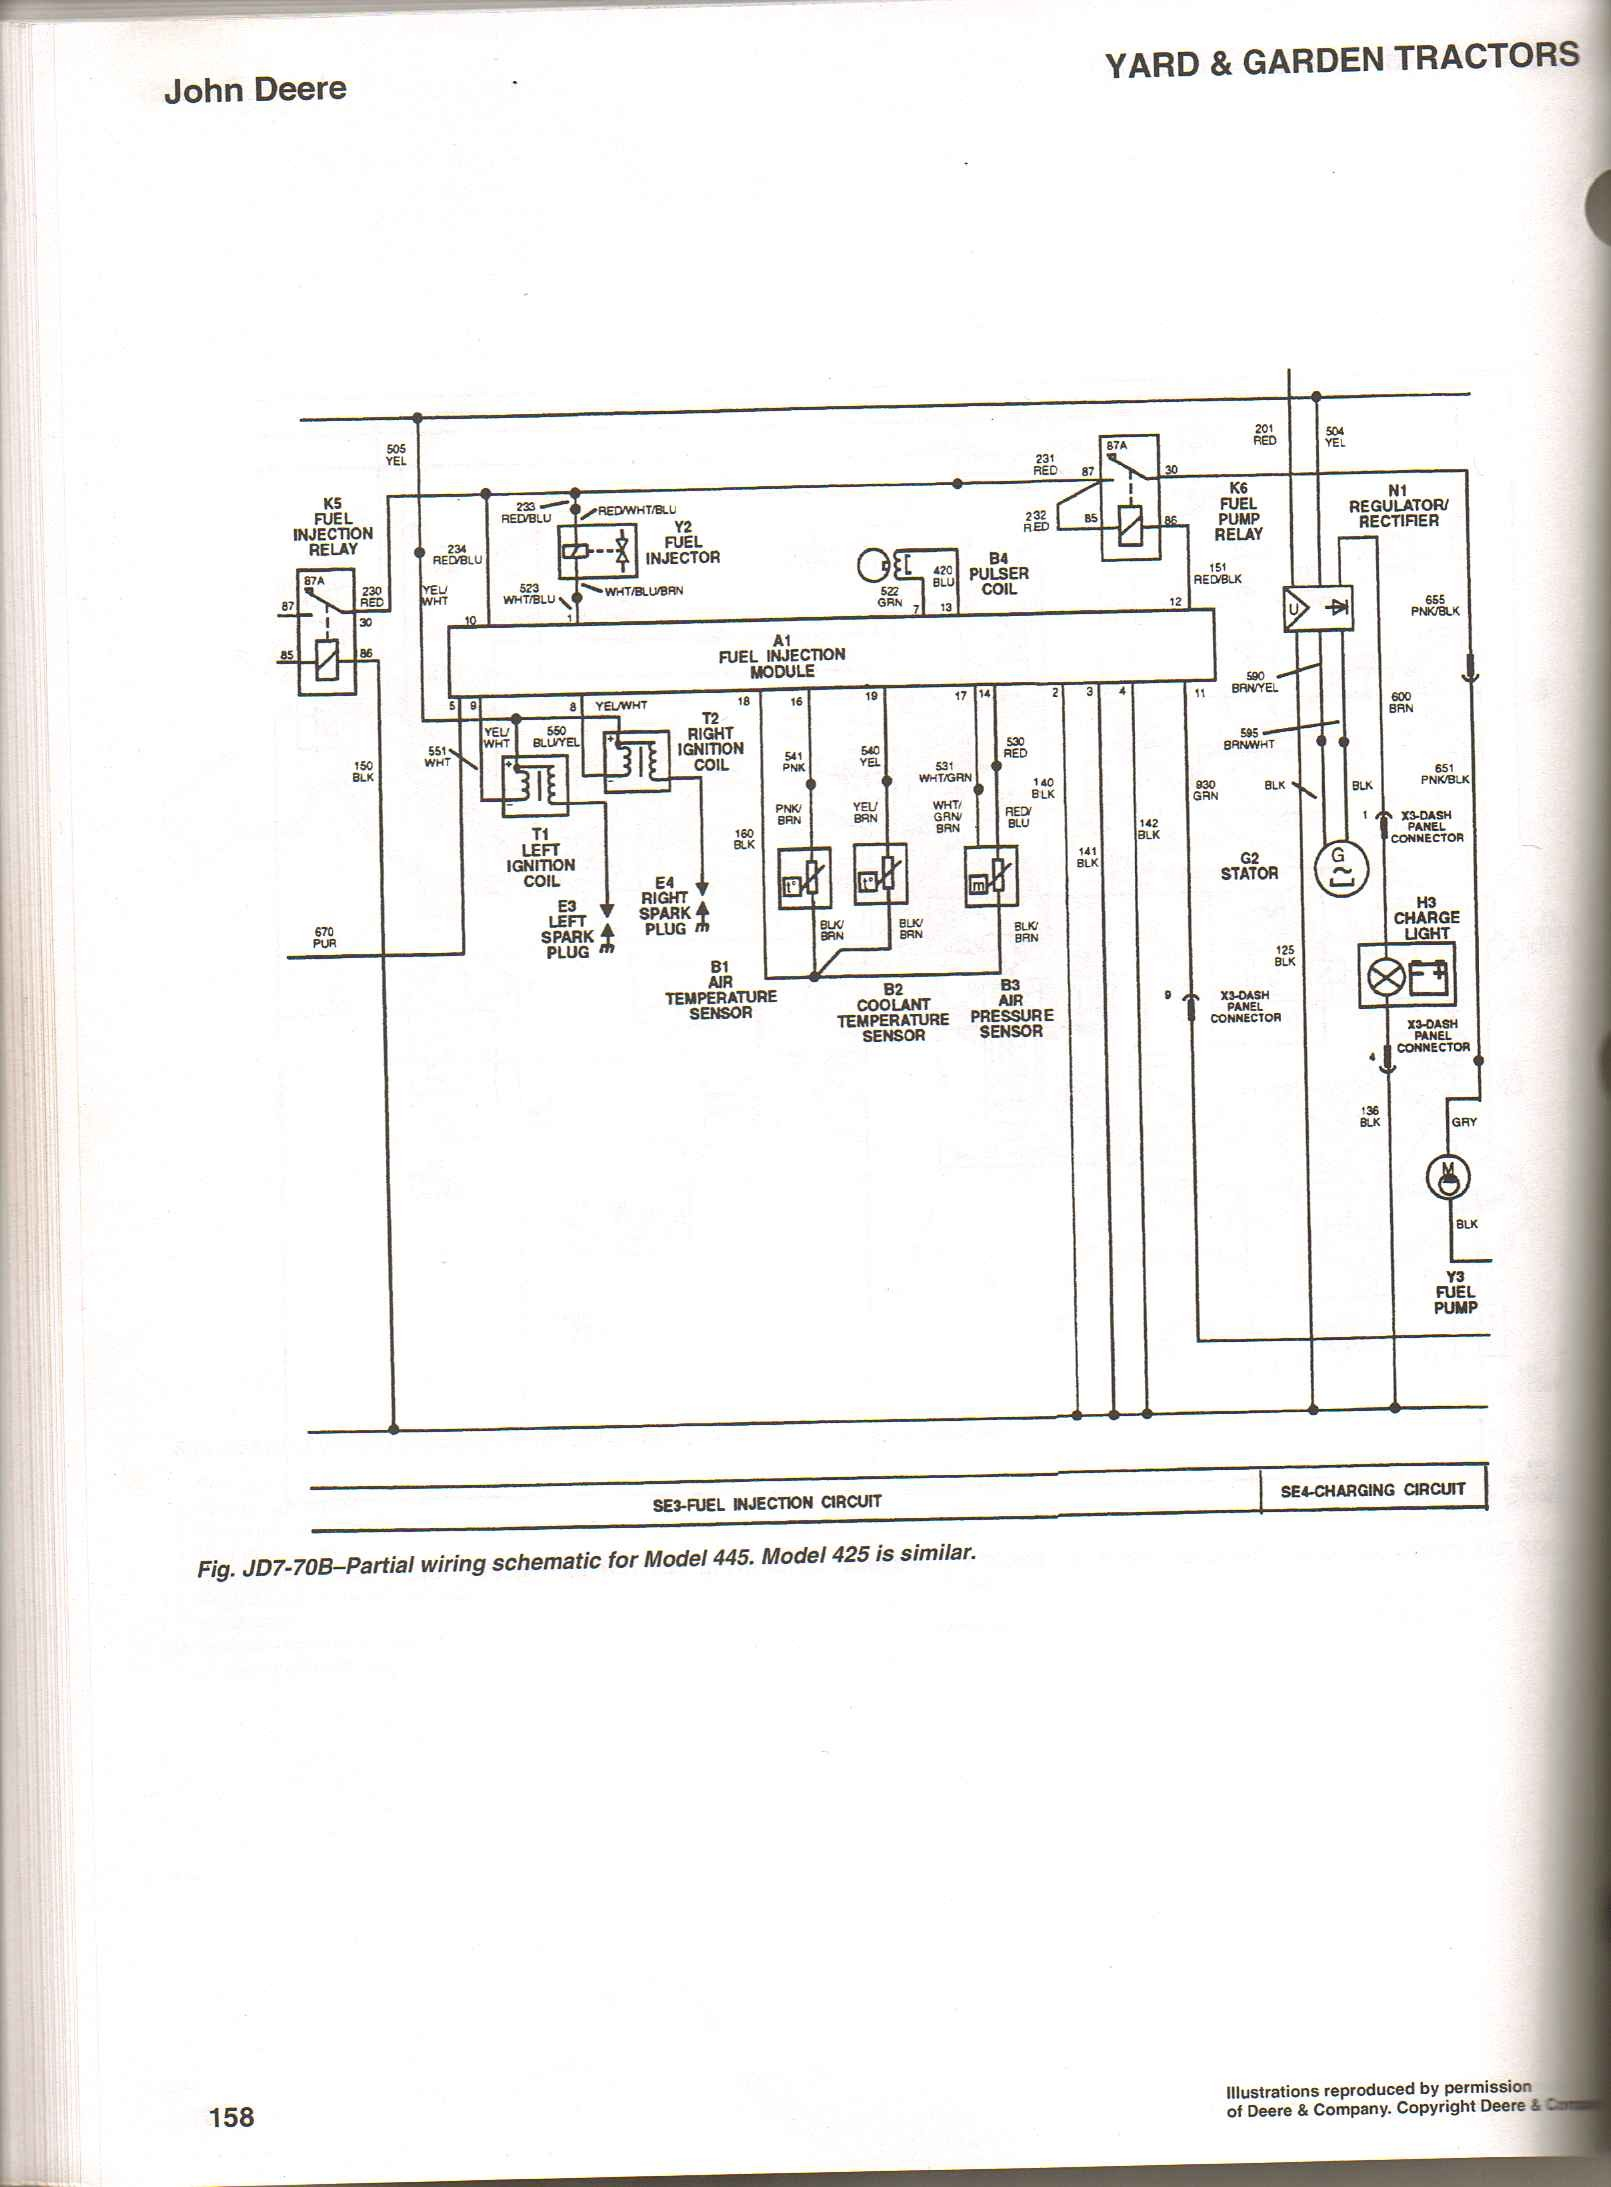 Electrical Scheme for A John Deere Gx345 Mm 5406] Wiring Diagram for 245 John Deere Tractor Free Of Electrical Scheme for A John Deere Gx345